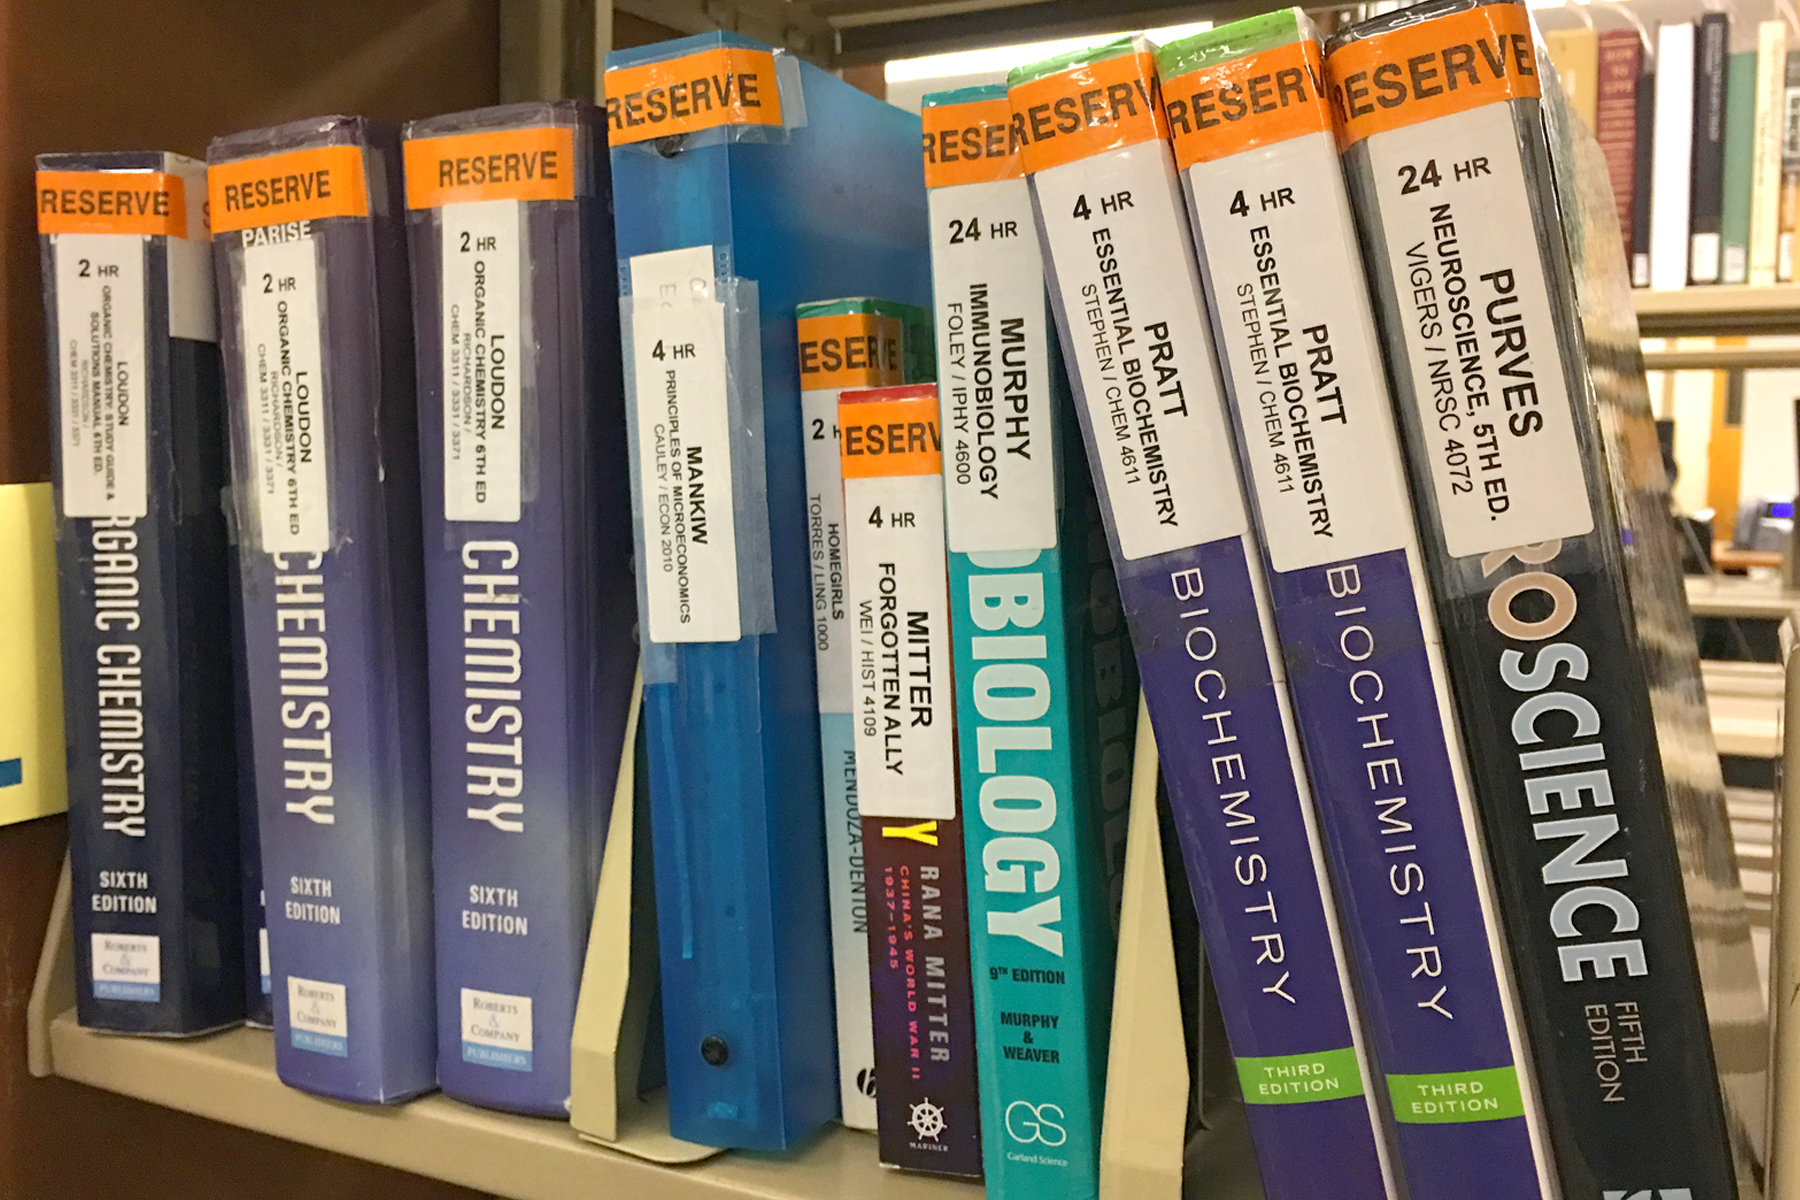 Course reserves textbooks in library